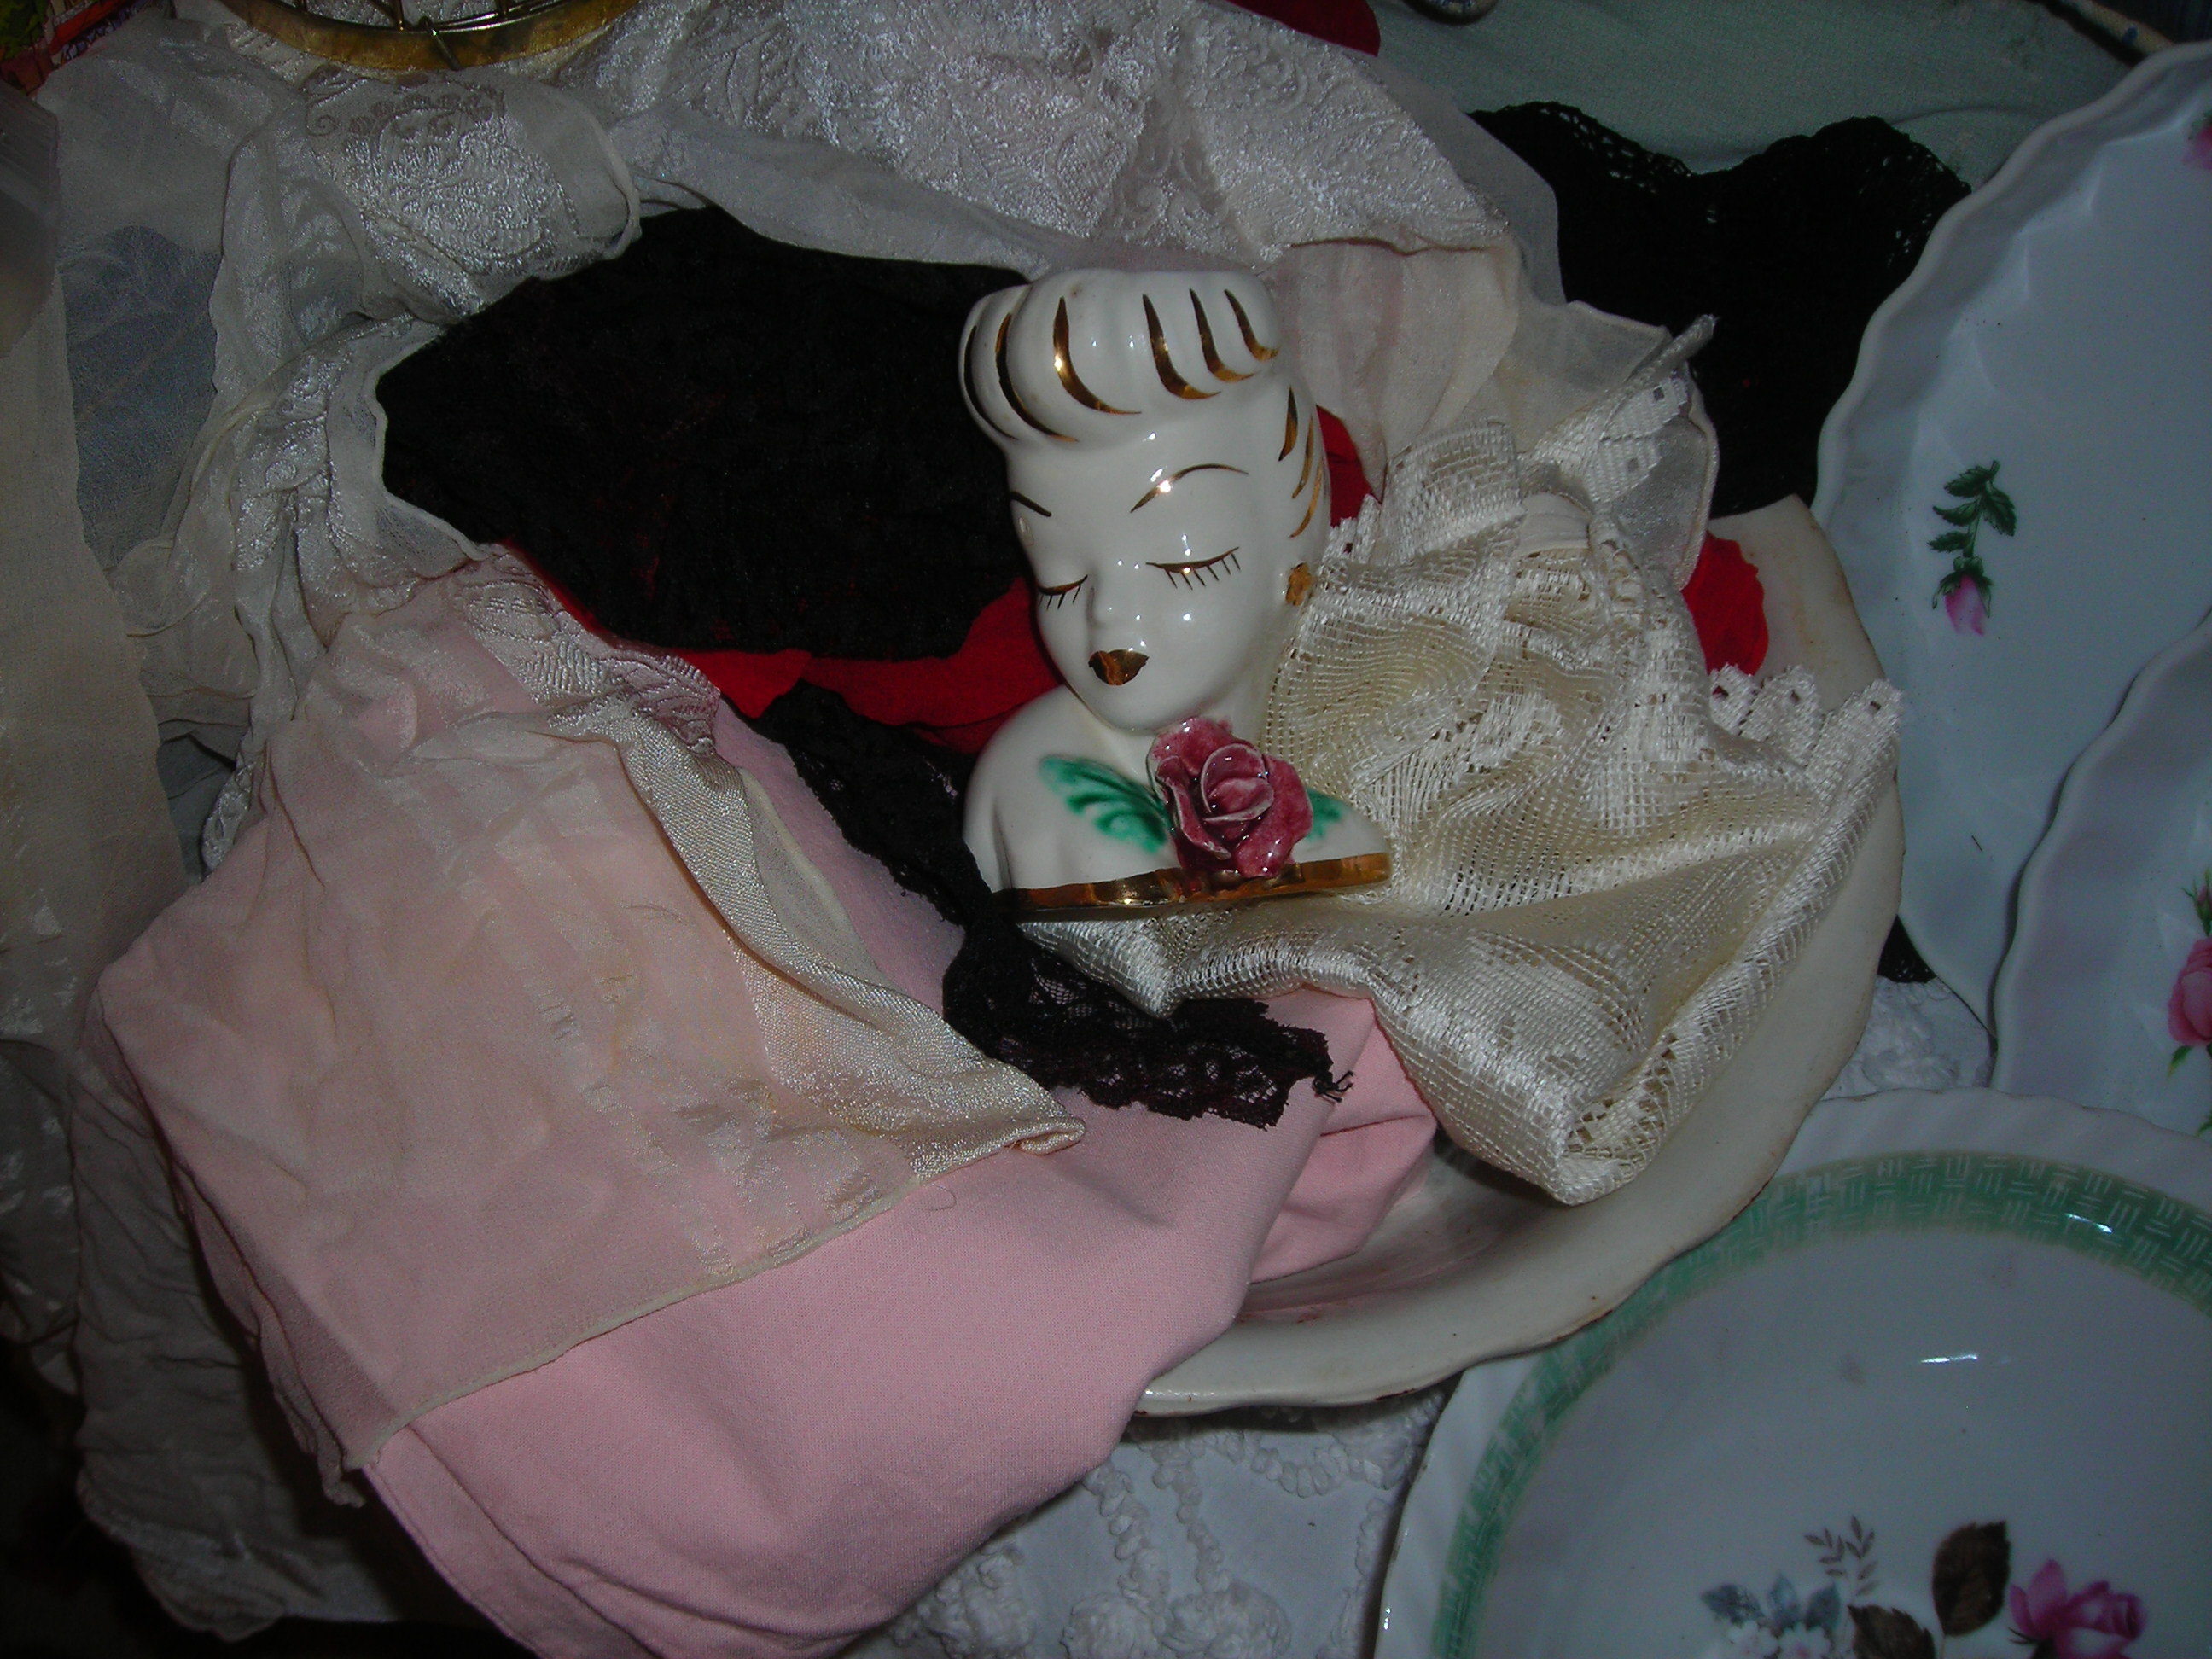 old bowl filled with vintage linens, scarves and my beautiful lady figurine